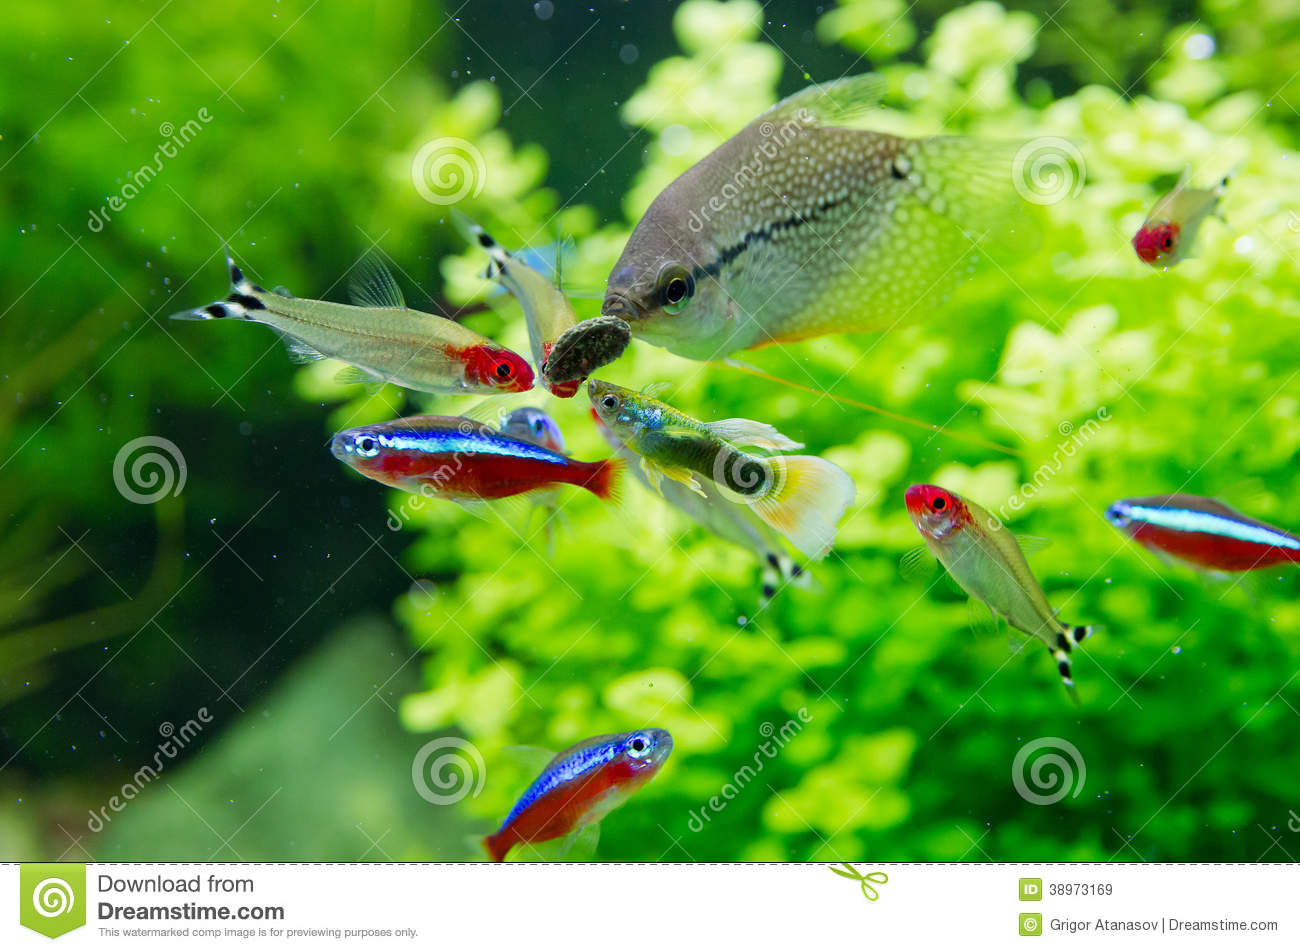 Freshwater aquarium fish exotic tropical freshwater for Rare freshwater aquarium fish